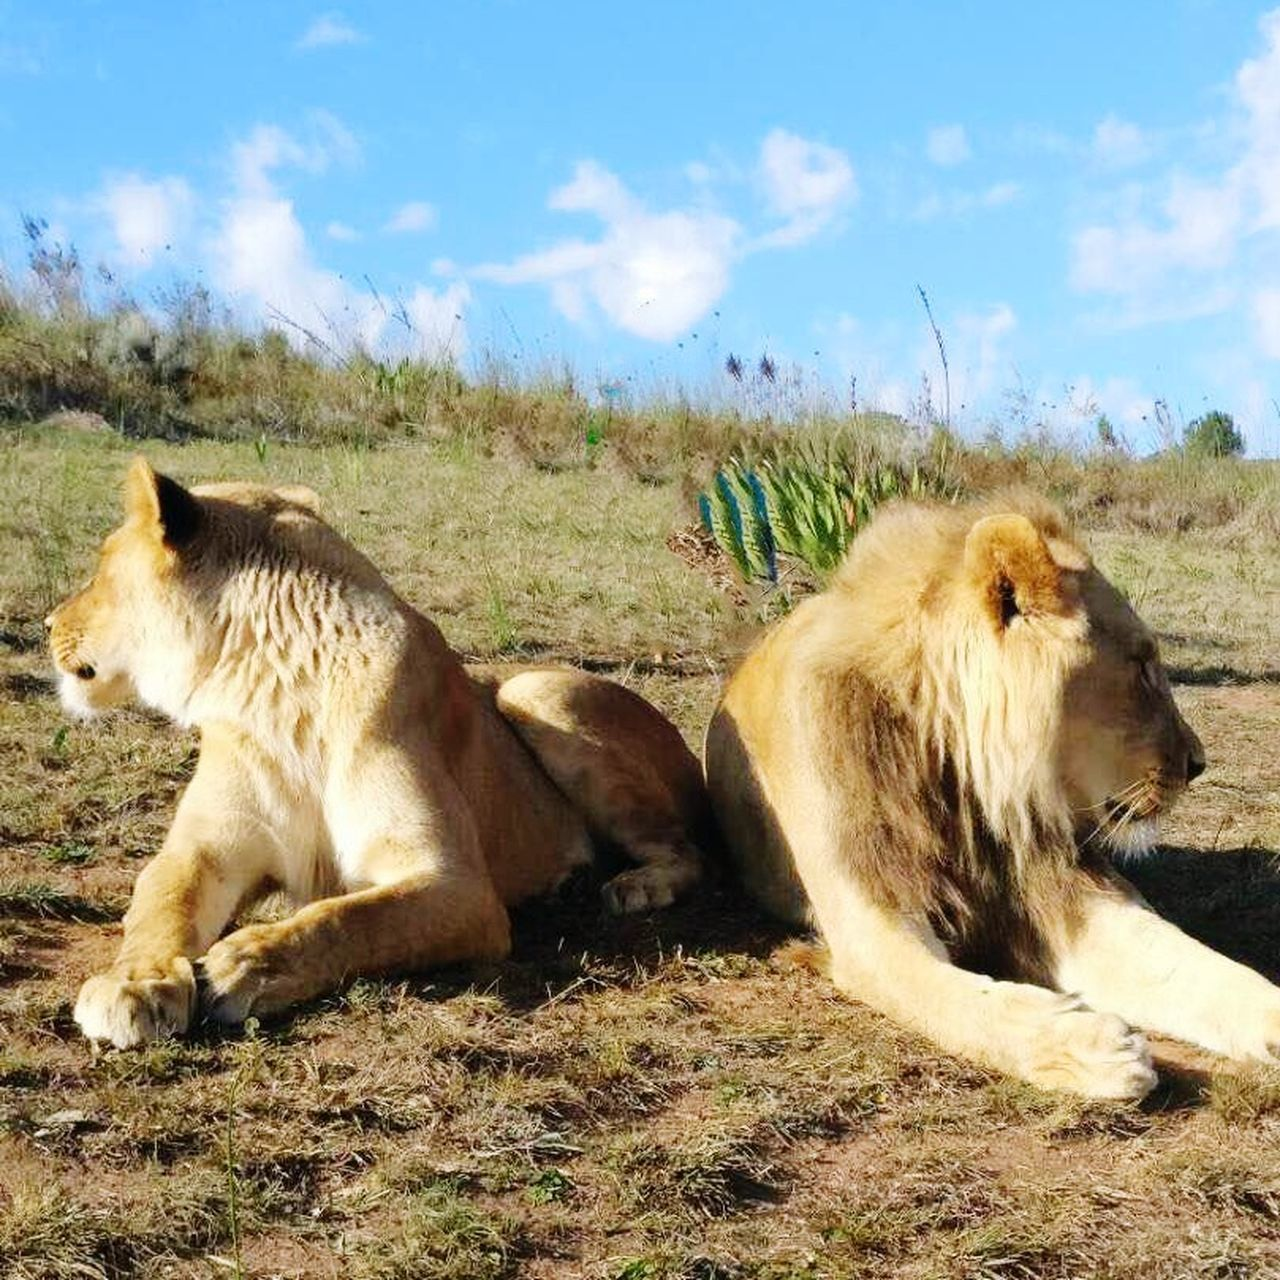 Animals In The Wild Animal Themes Mammal Day No People Animal Wildlife Lion - Feline Outdoors Sky Lying Down Nature Lioness EyeEmNewHere Travel Destinations Lions Lion King  Lion Outdoor Photography